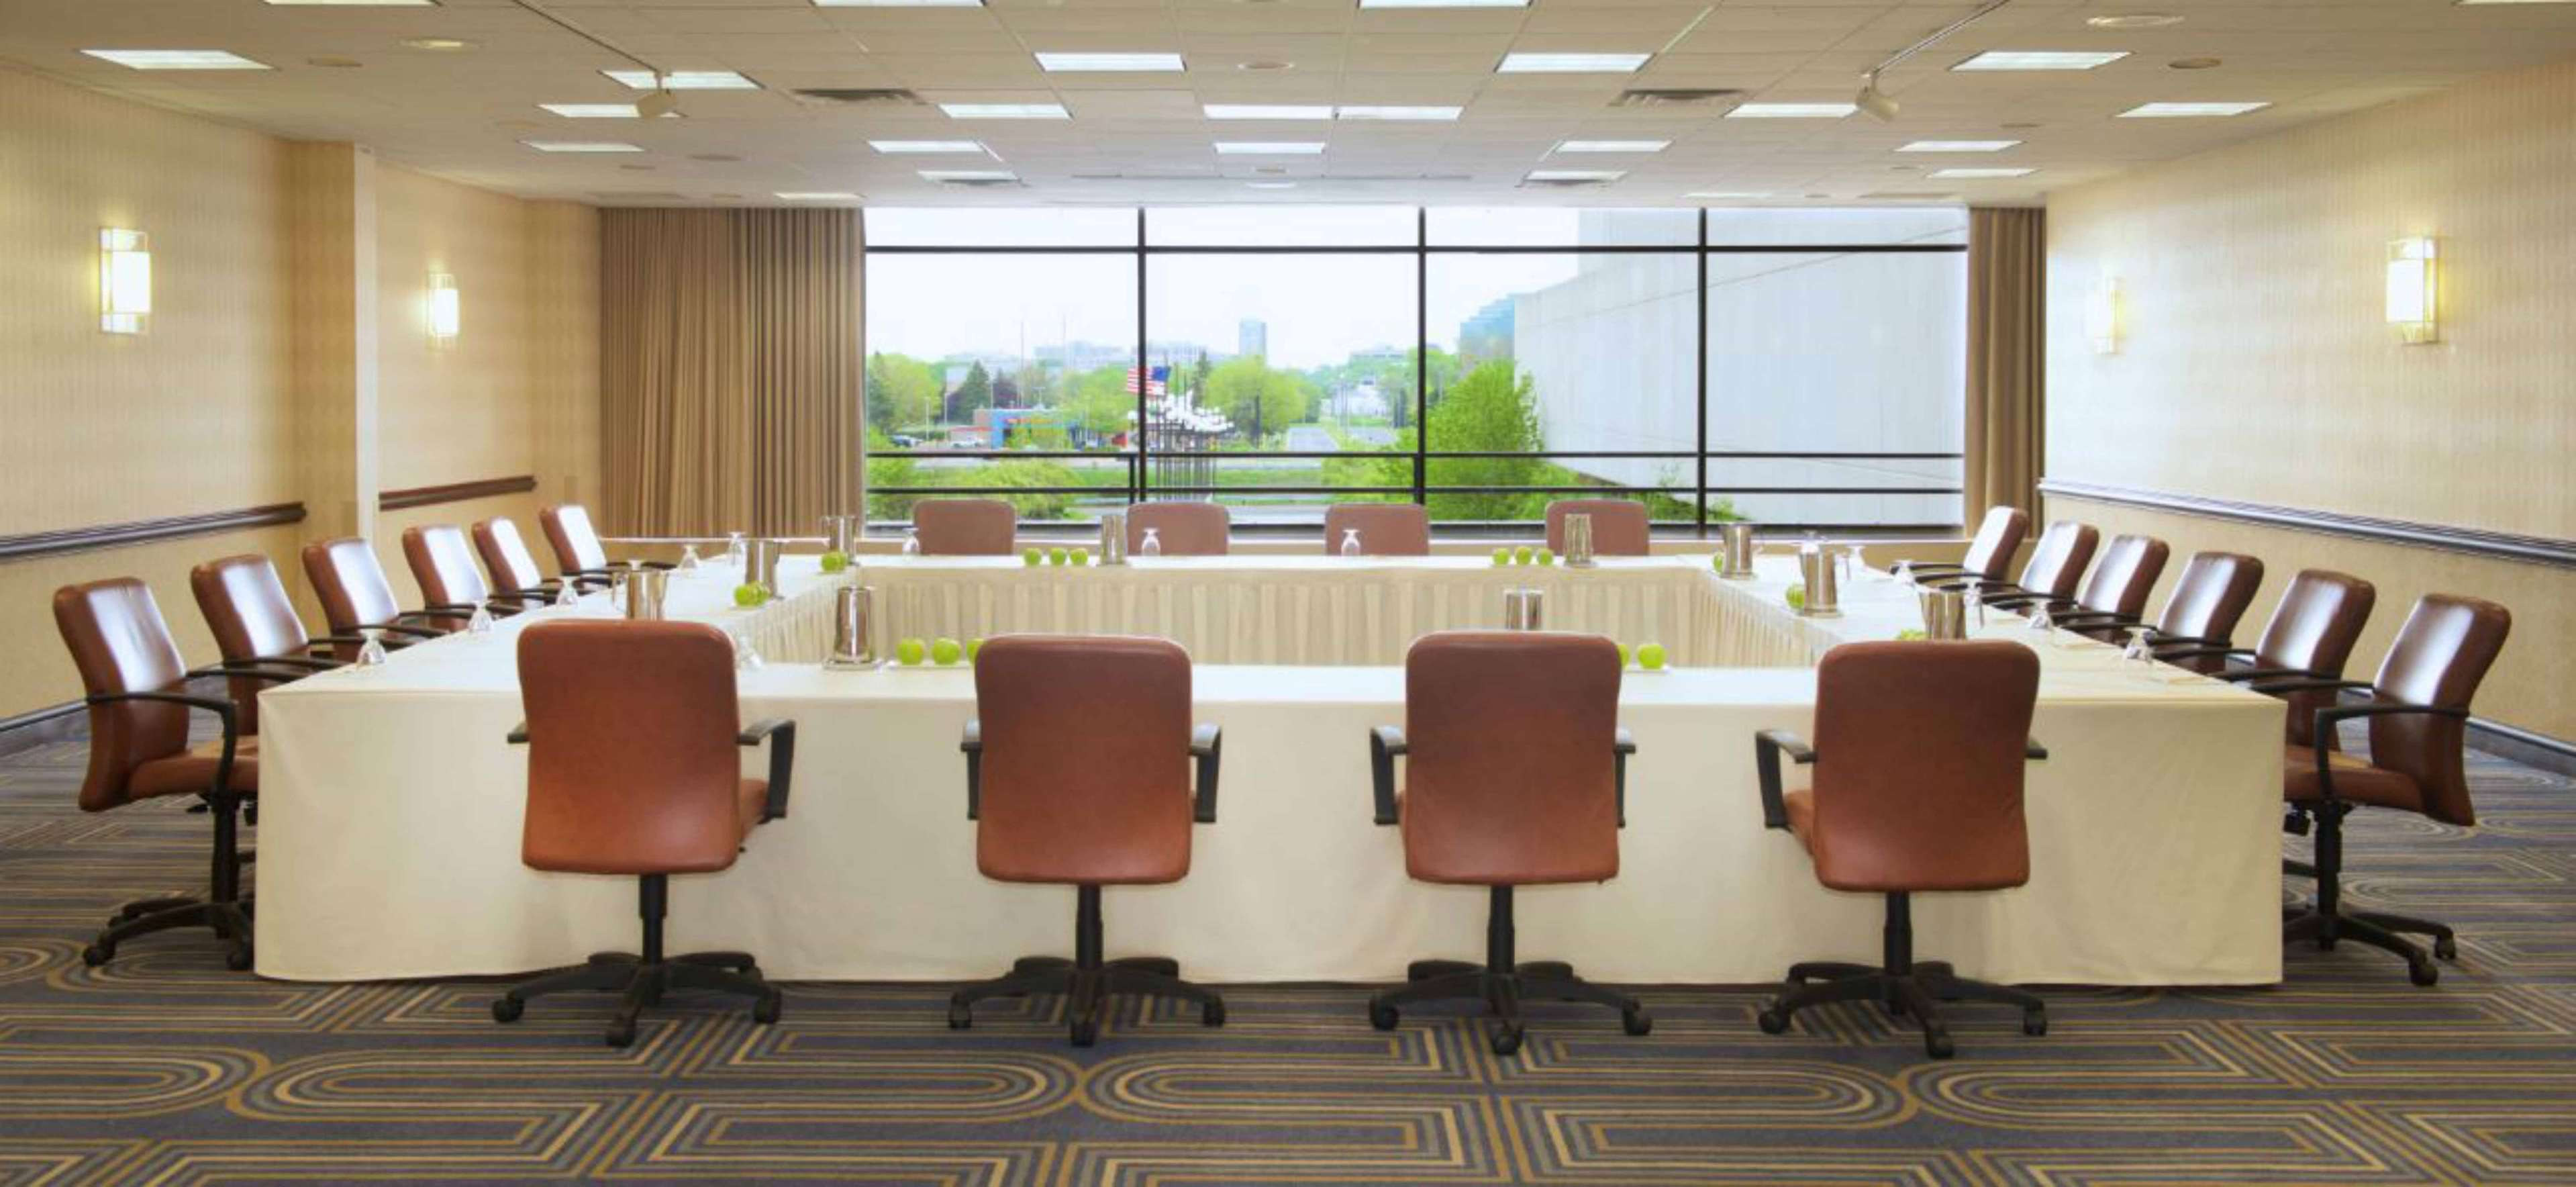 DoubleTree by Hilton Hotel Bloomington - Minneapolis South image 27